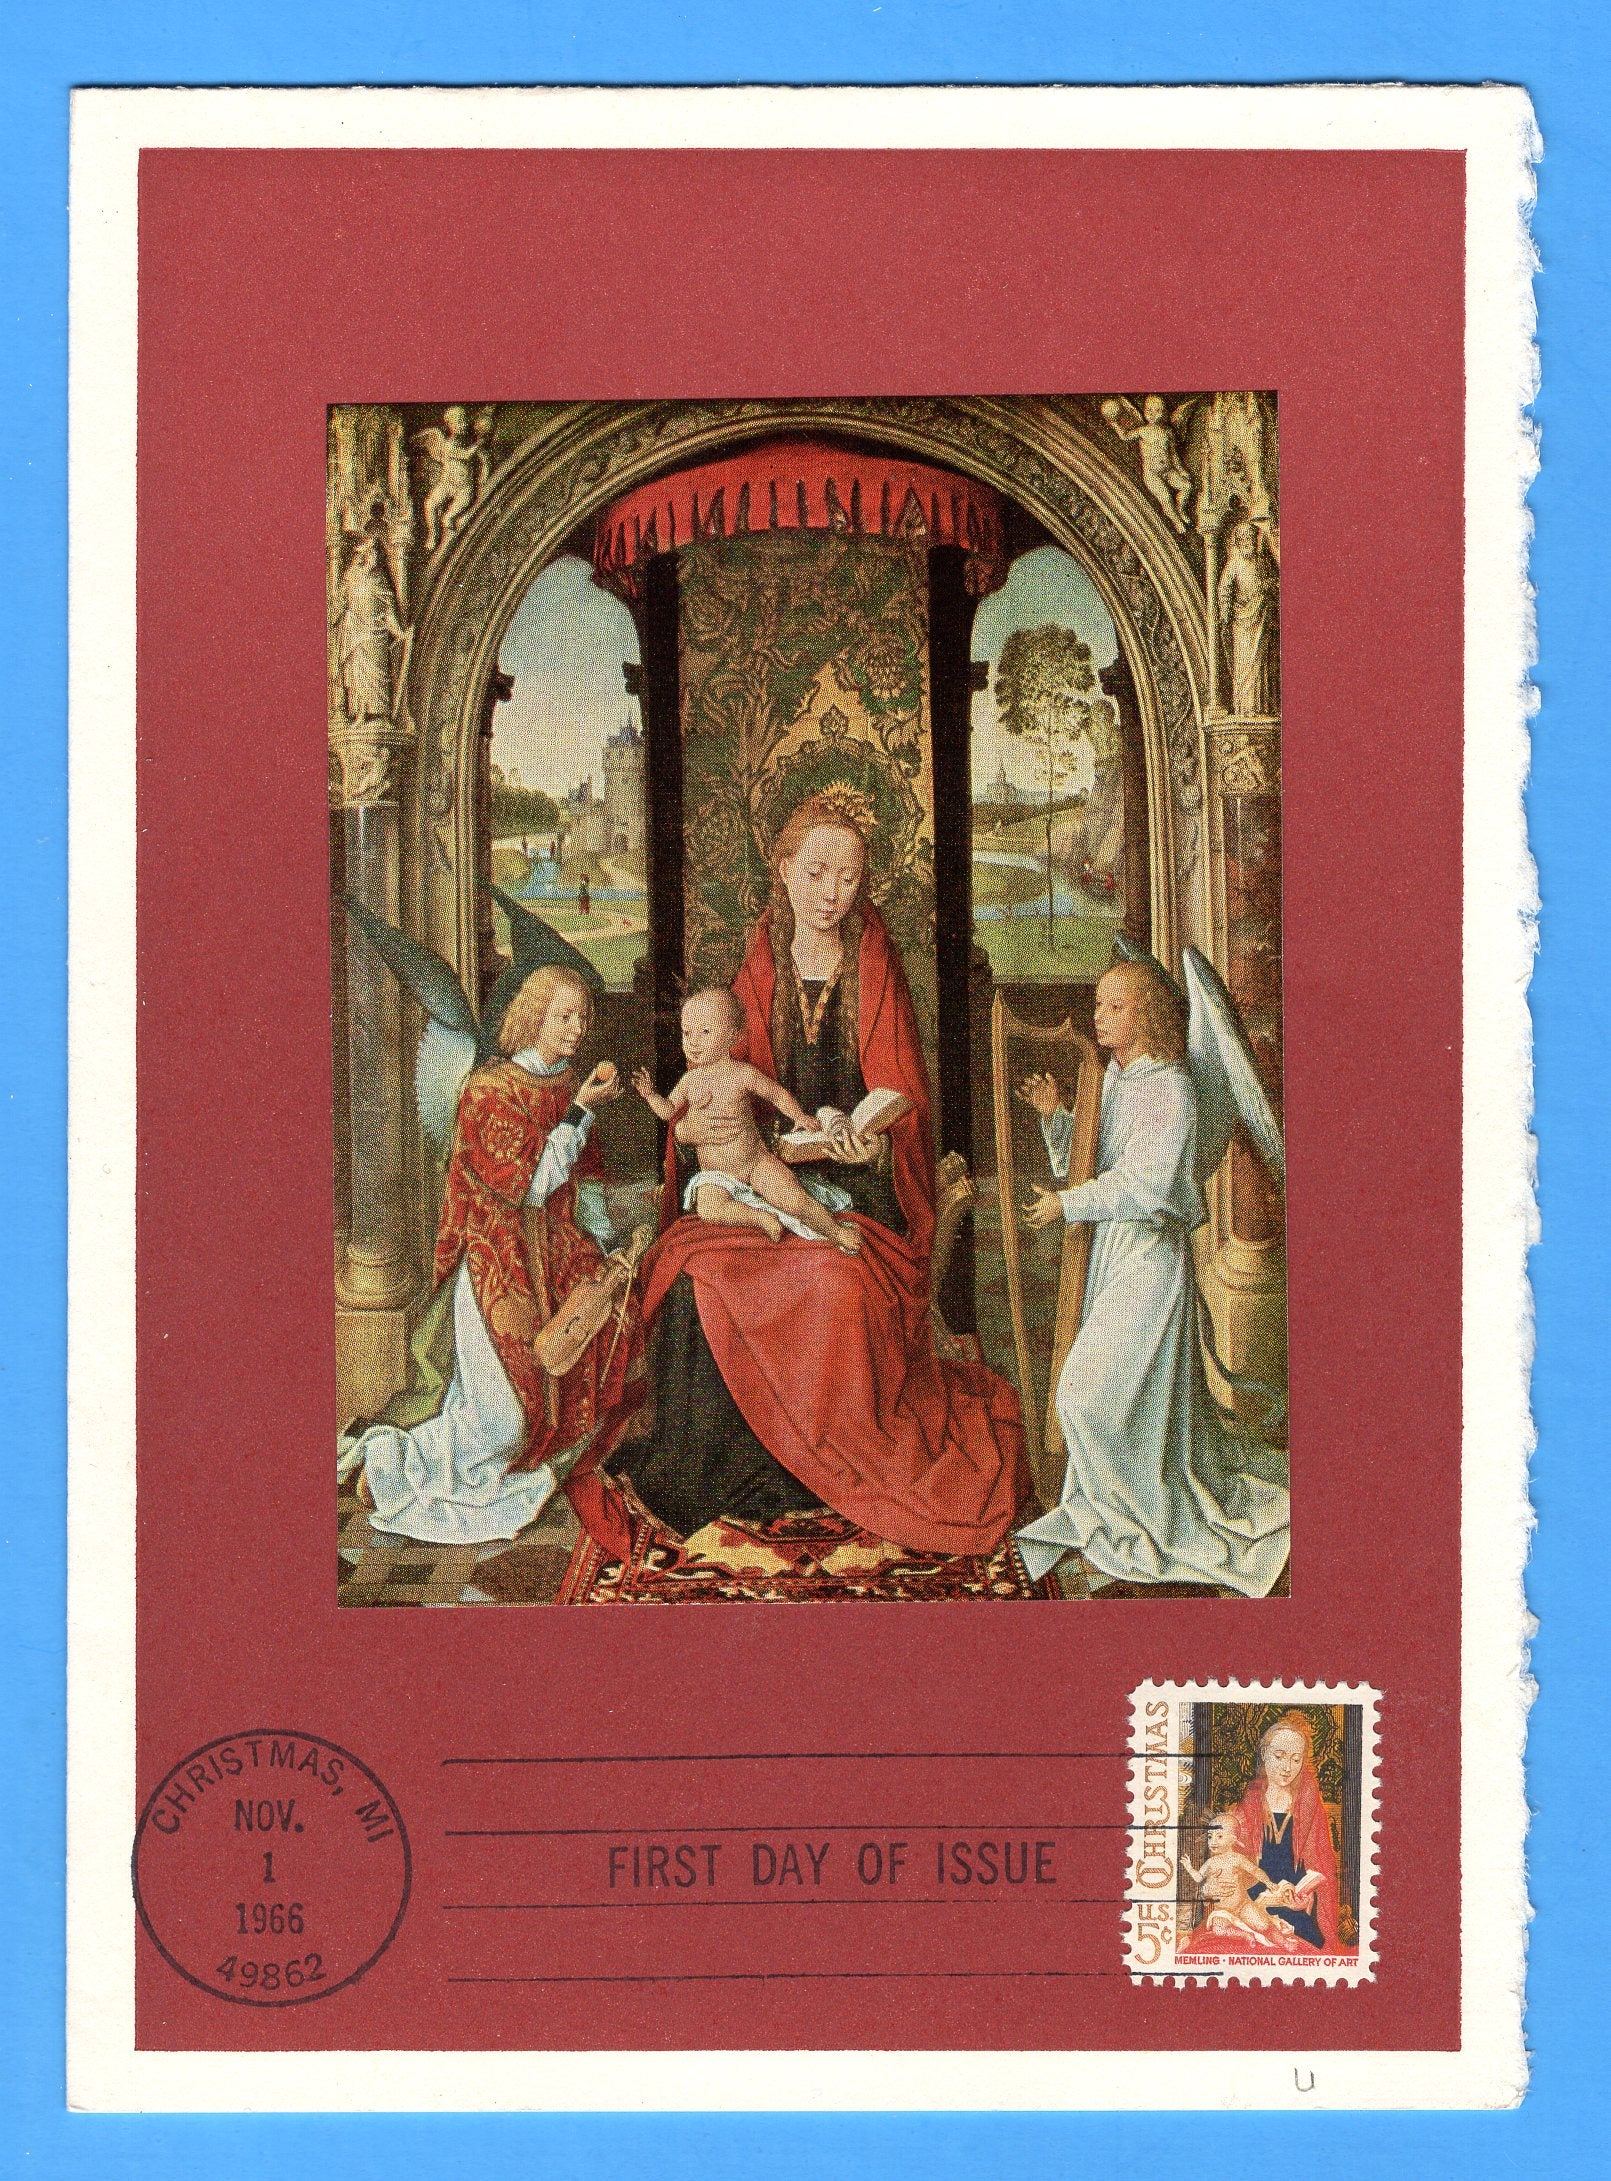 Scott 1321 Christmas Madonna & Child 1966 First Day of Issue on National Gallery of Art Greetings Card